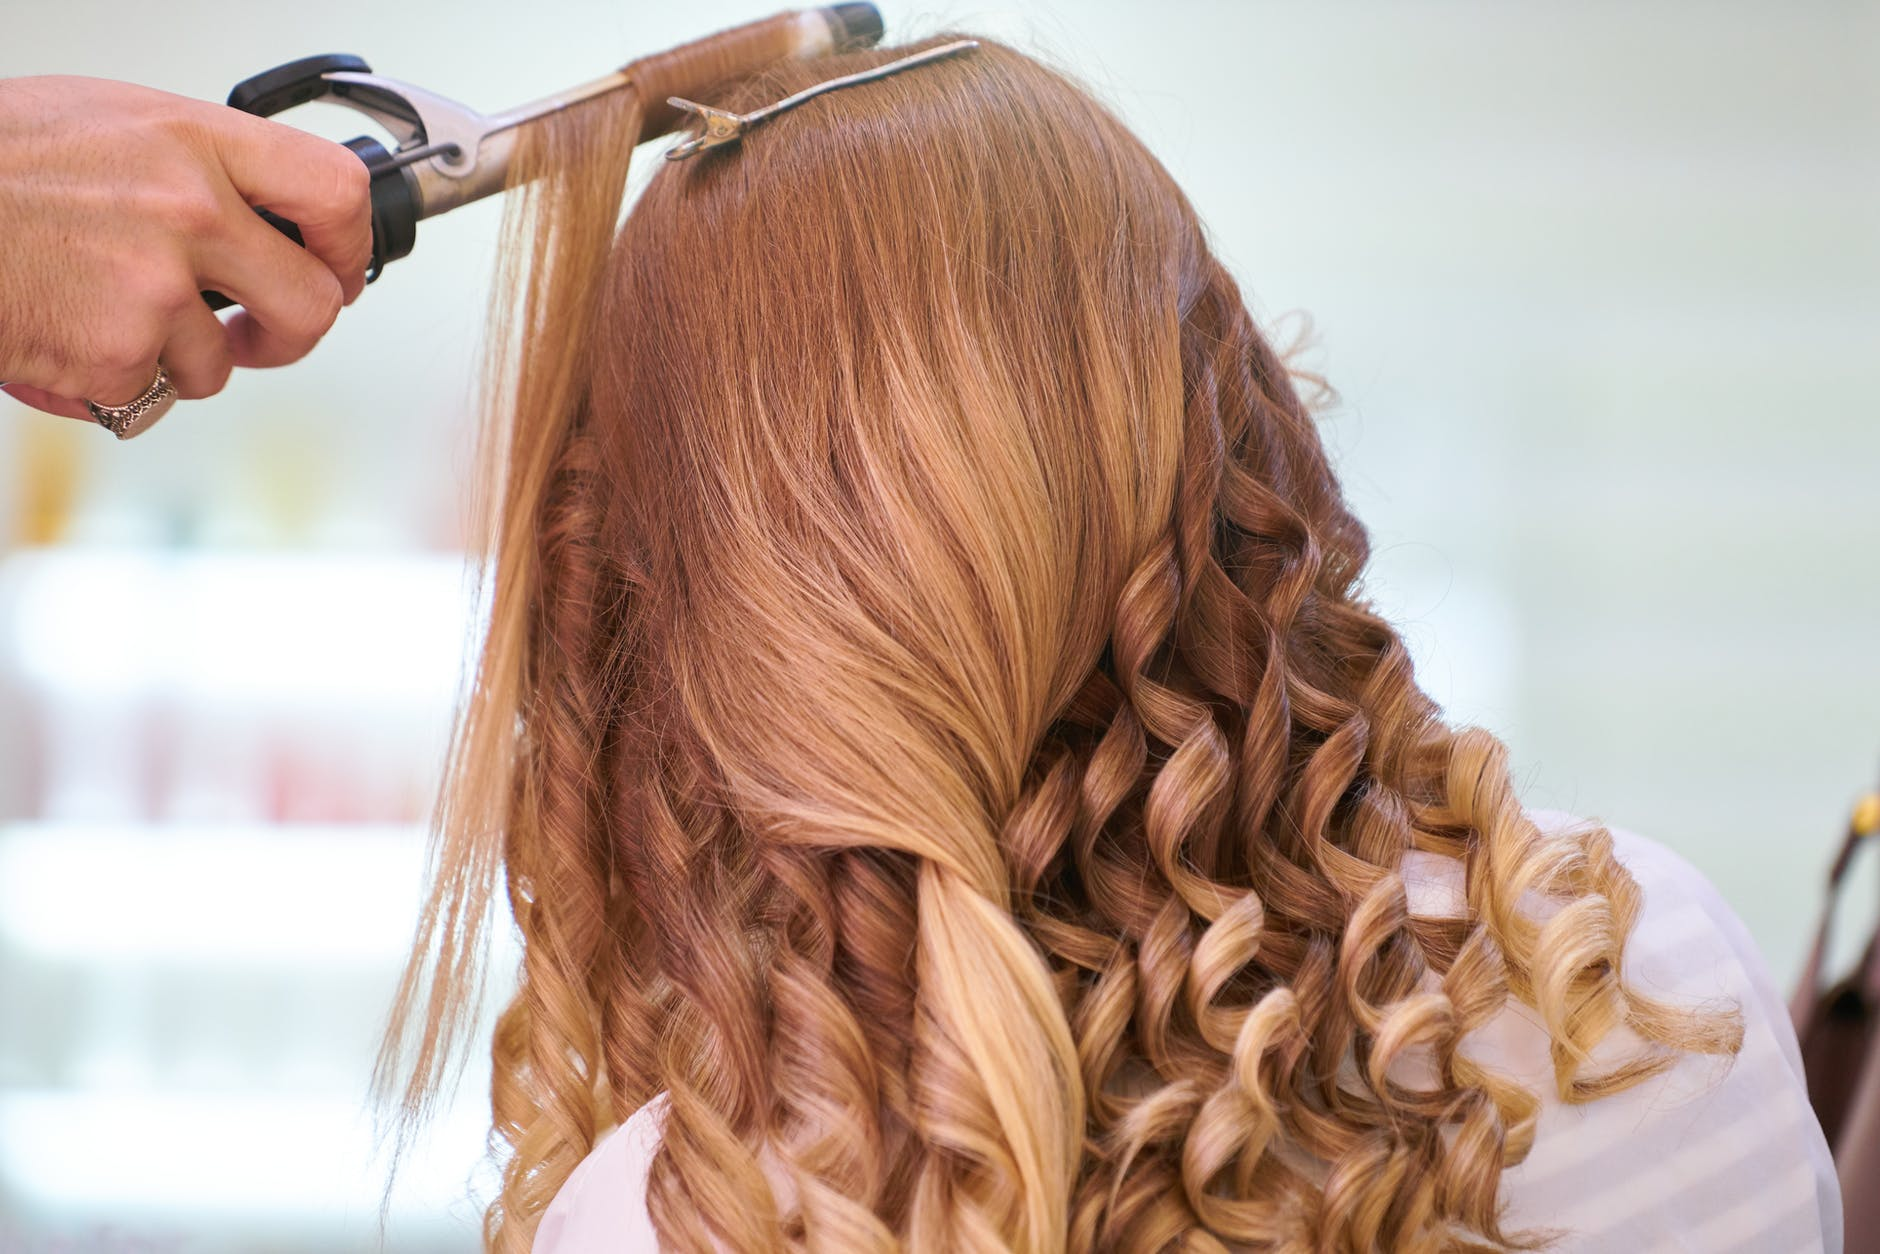 photo of person s hairstyle